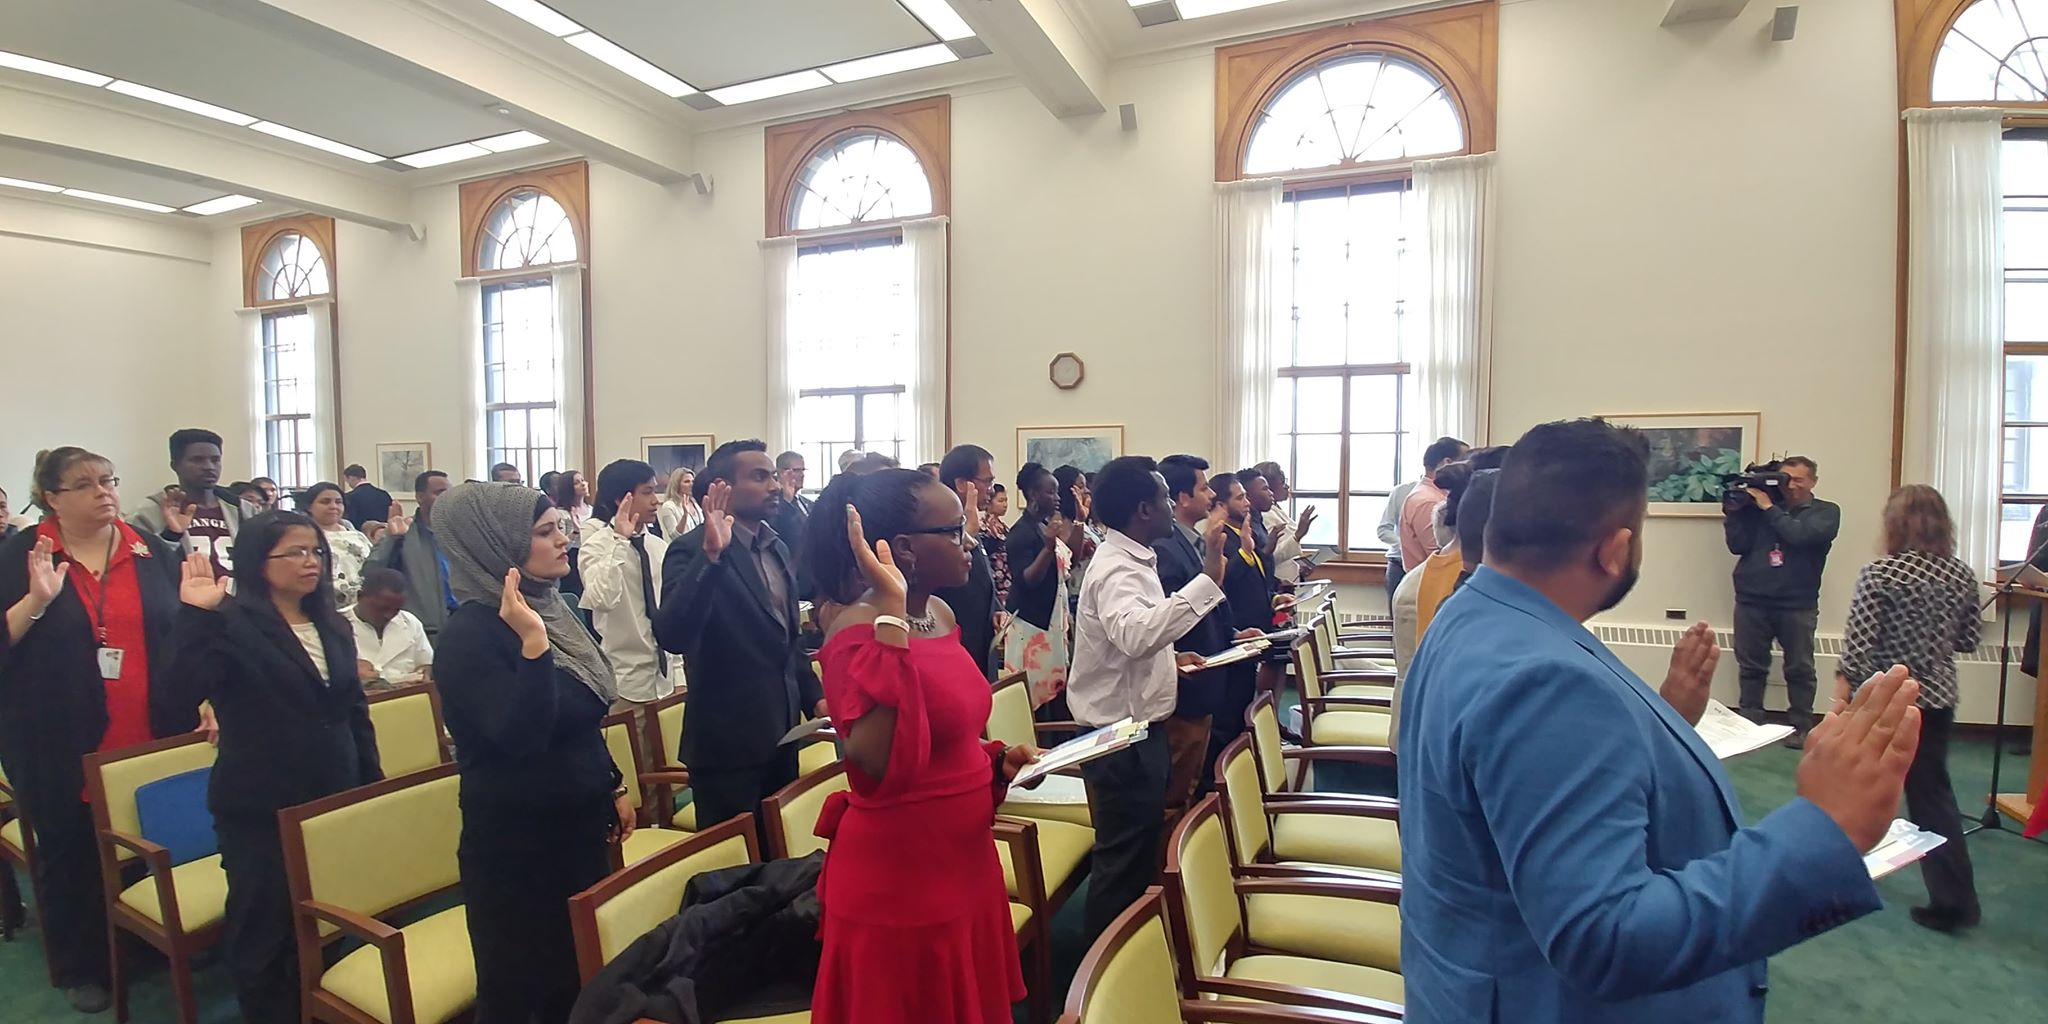 New Canadians welcomed to Saskatchewan with citizenship ceremony